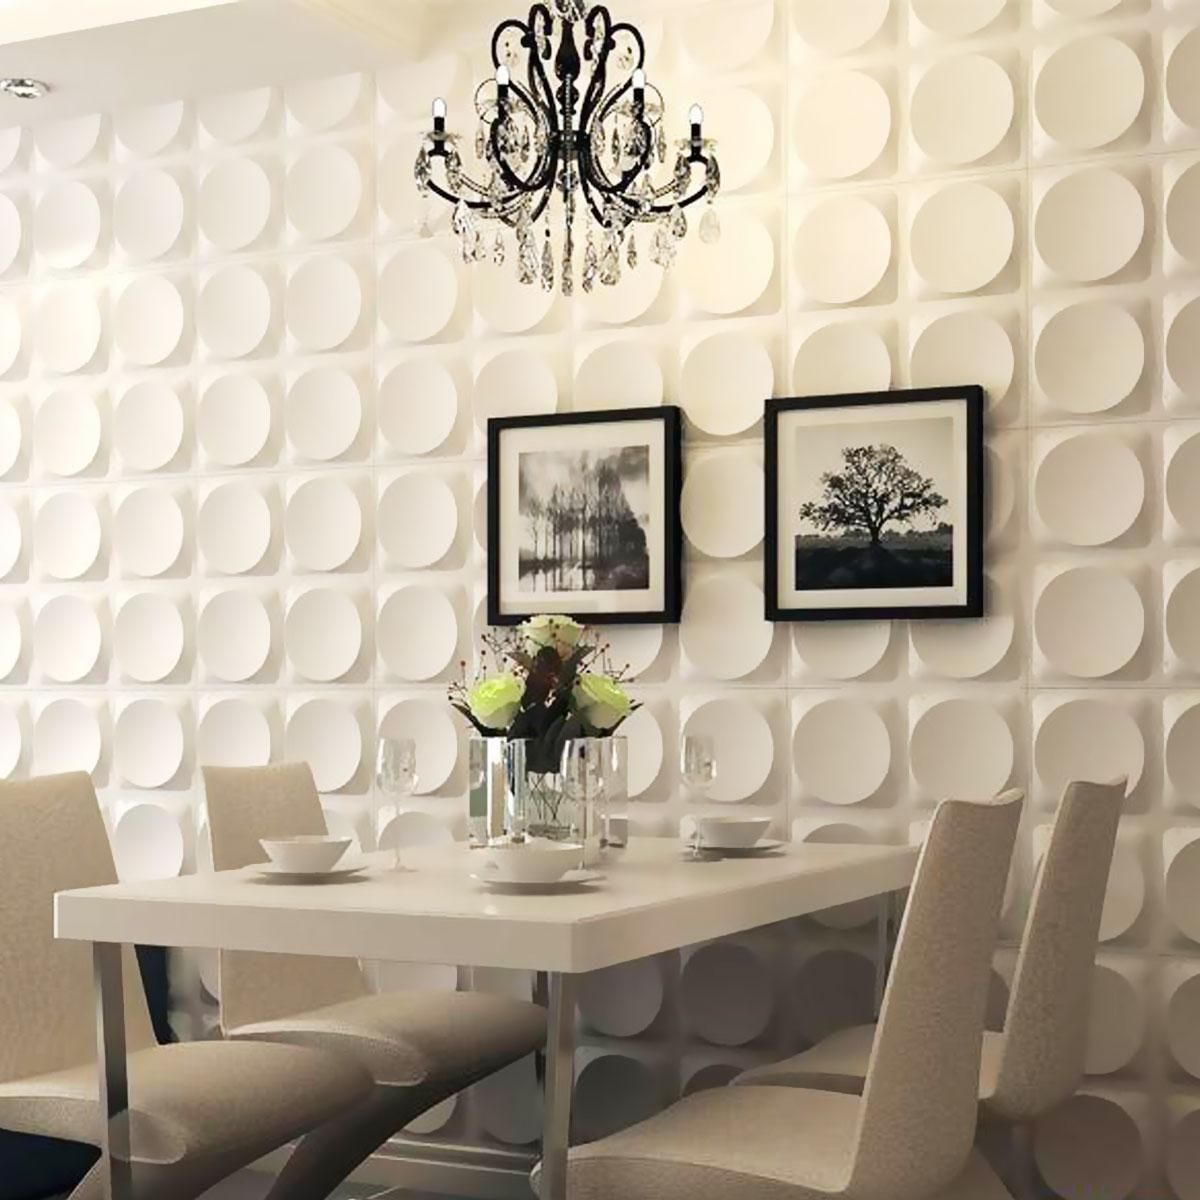 19 5 8 Inch W X 19 5 8 Inch H Adonis Endurawall Decorative 3d Wall Panel White Plastic Wall Panels 3d Wall Panels Pvc Wall Panels